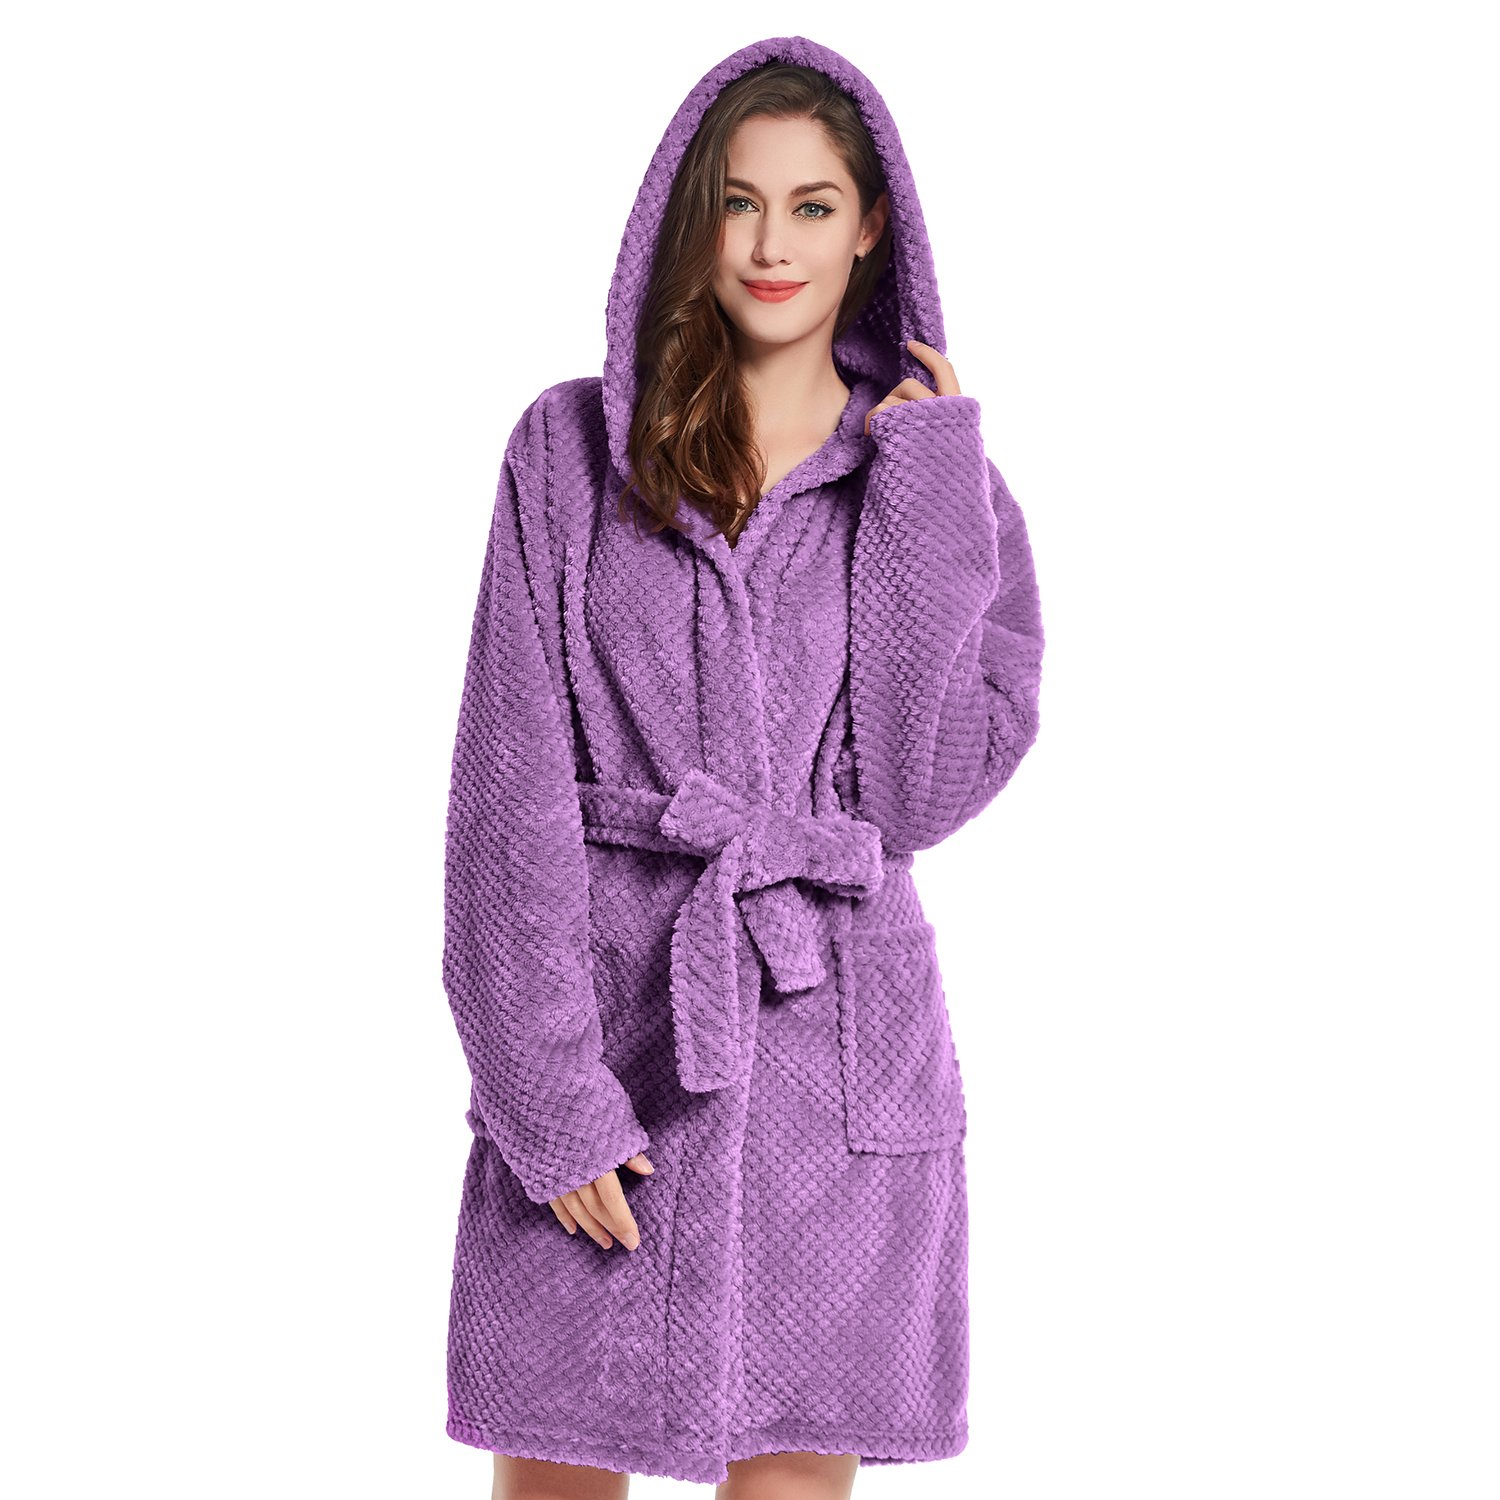 Bathrobe XXXL Short Women Men Unisex Hooded Dressing Gown Microfibre Soft Snug Cosy Fleece Black Sleepyhead shop_decoking